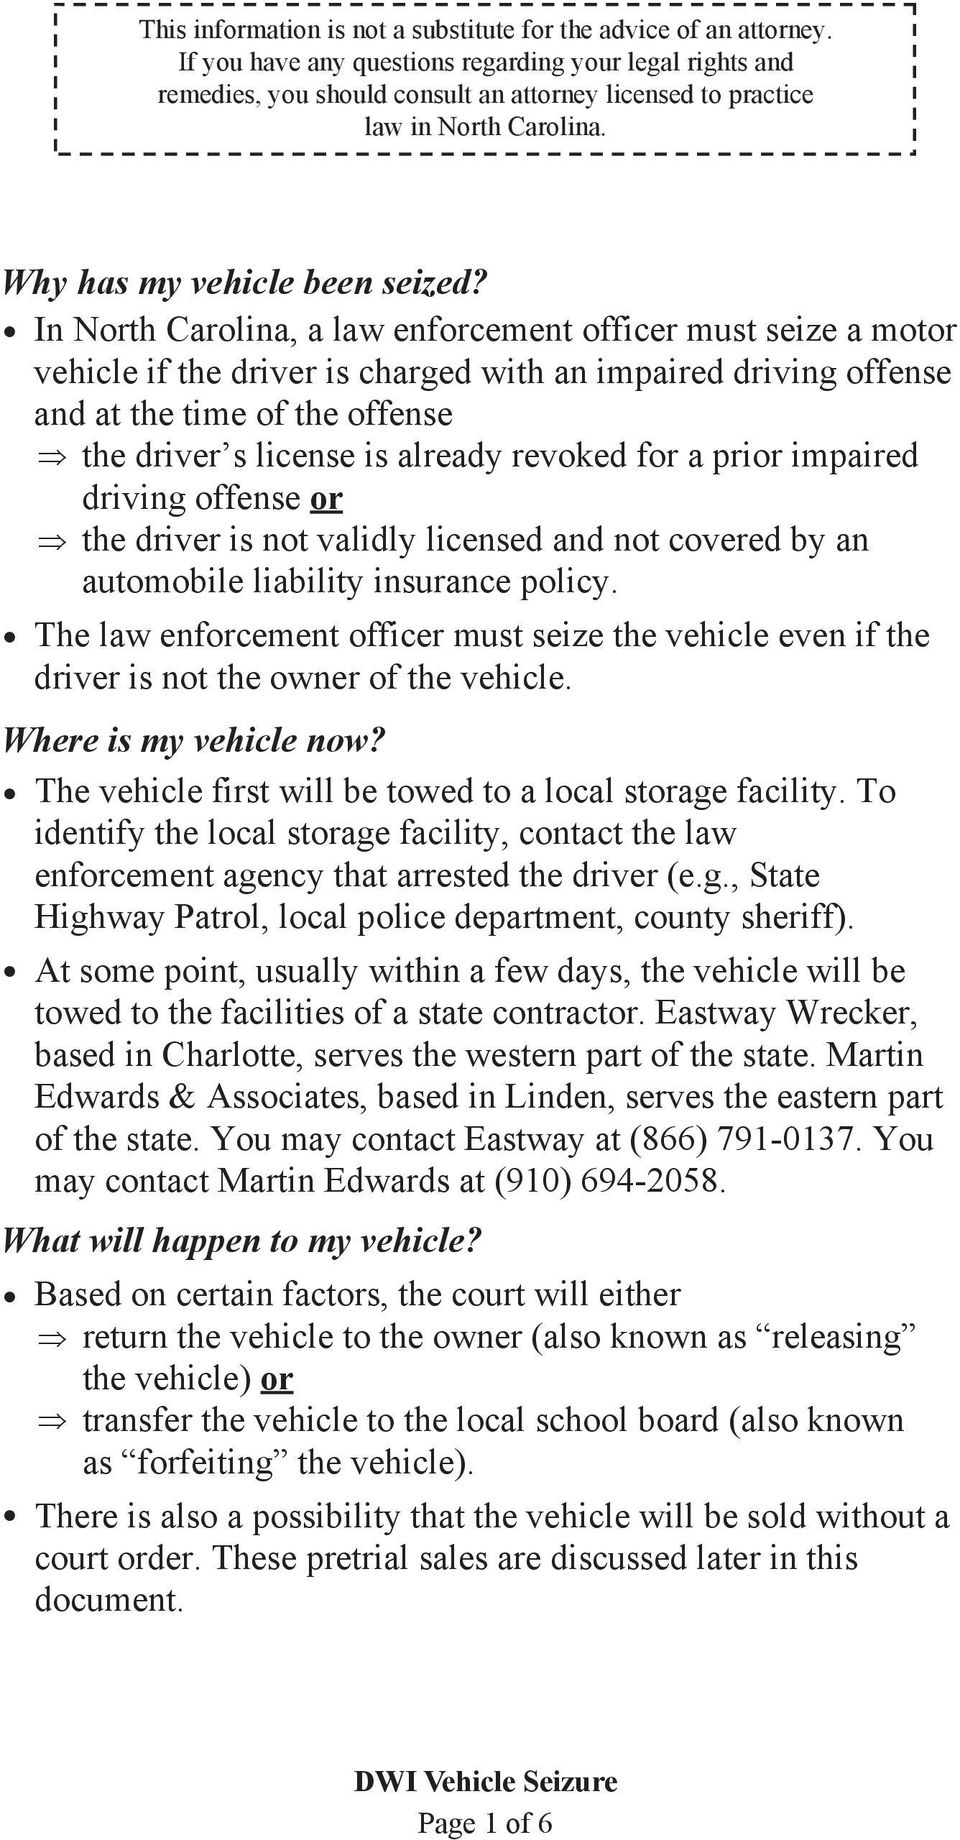 In North Carolina, a law enforcement officer must seize a motor vehicle if the driver is charged with an impaired driving offense and at the time of the offense the driver s license is already